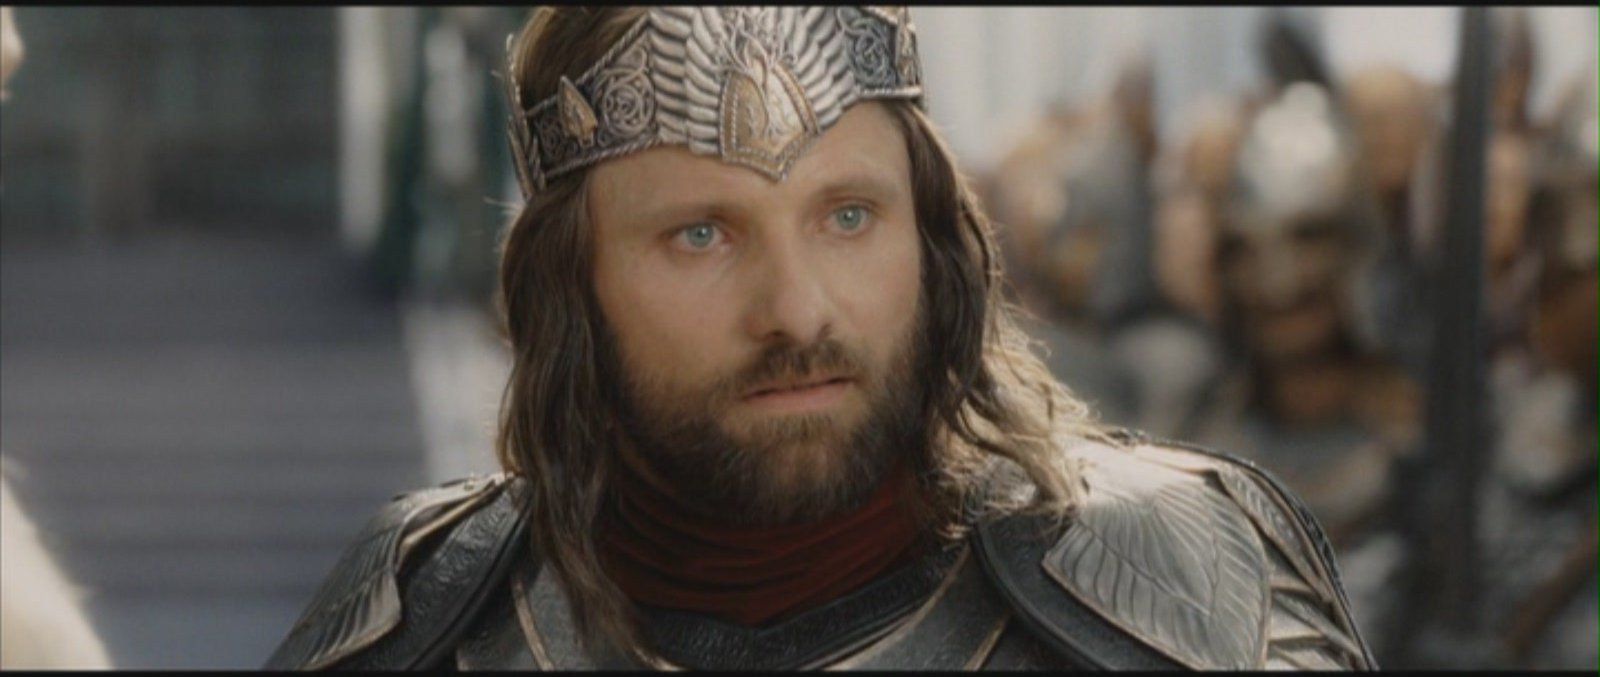 Arwen-and-Aragorn-Lord-of-the-Rings-Return-of-the-King-aragorn-and-arwen-11683821-1600-677.jpg